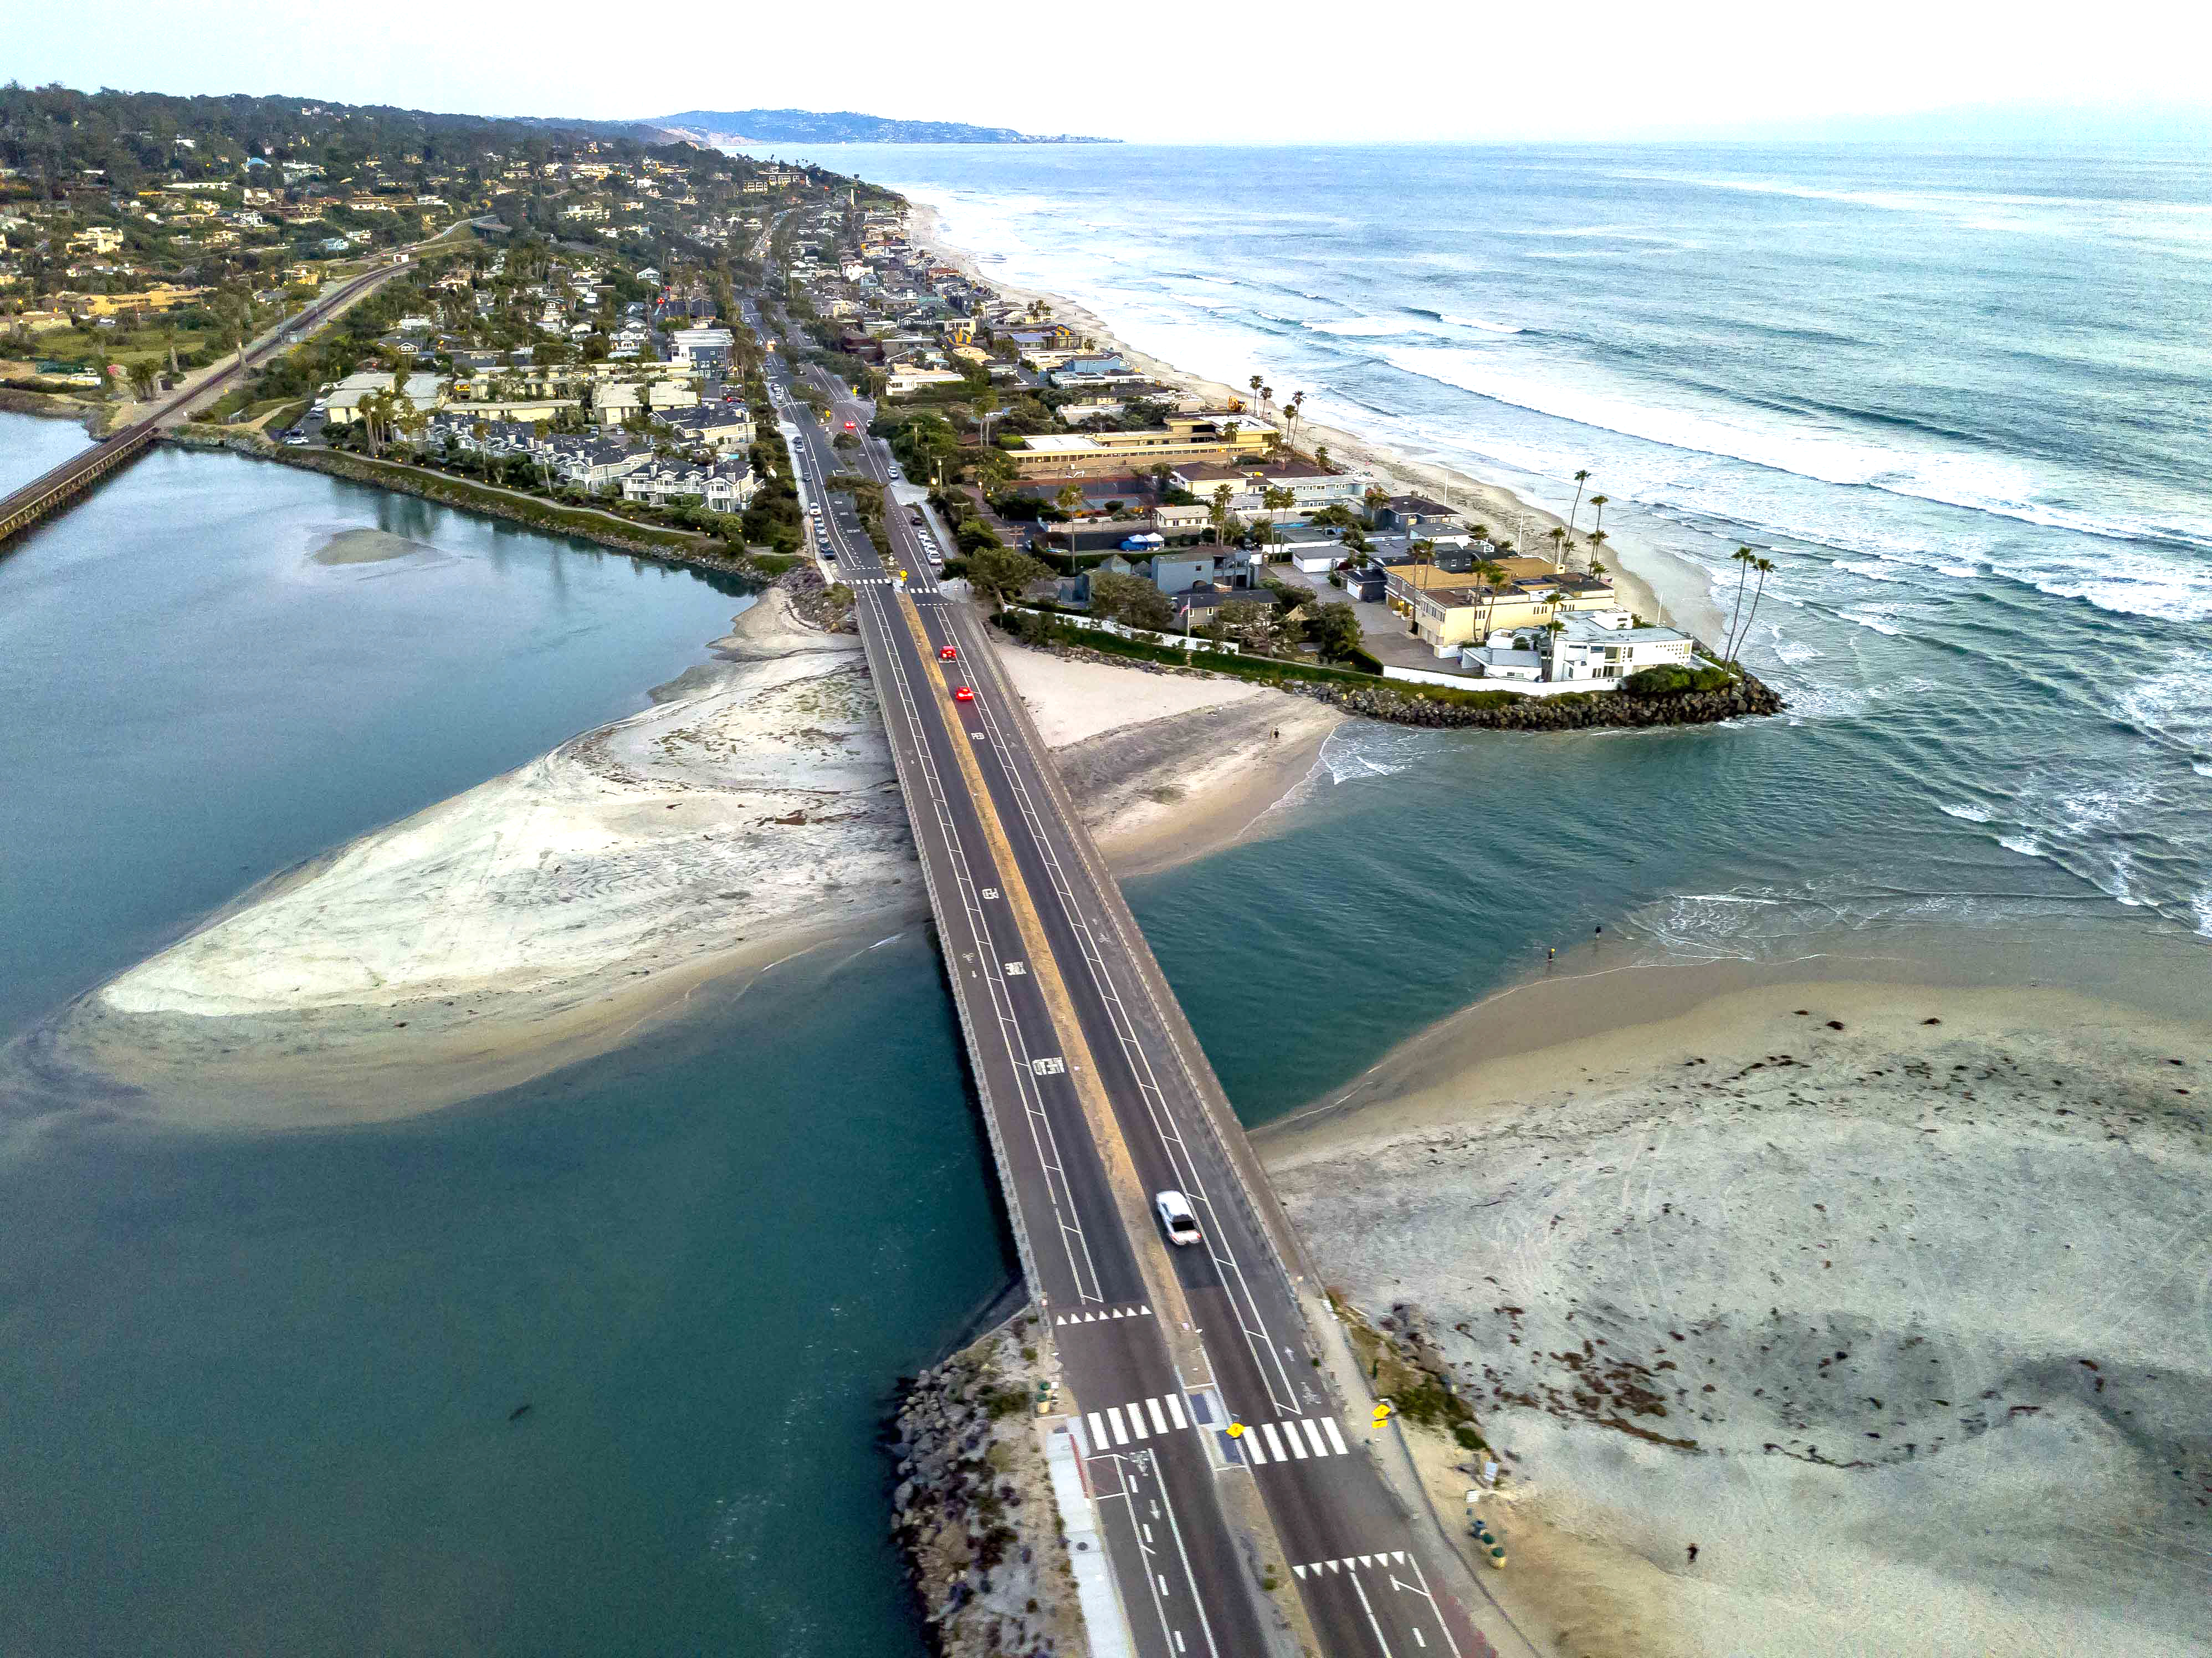 Bluff erosion issues remain 'at the core' of Del Mar